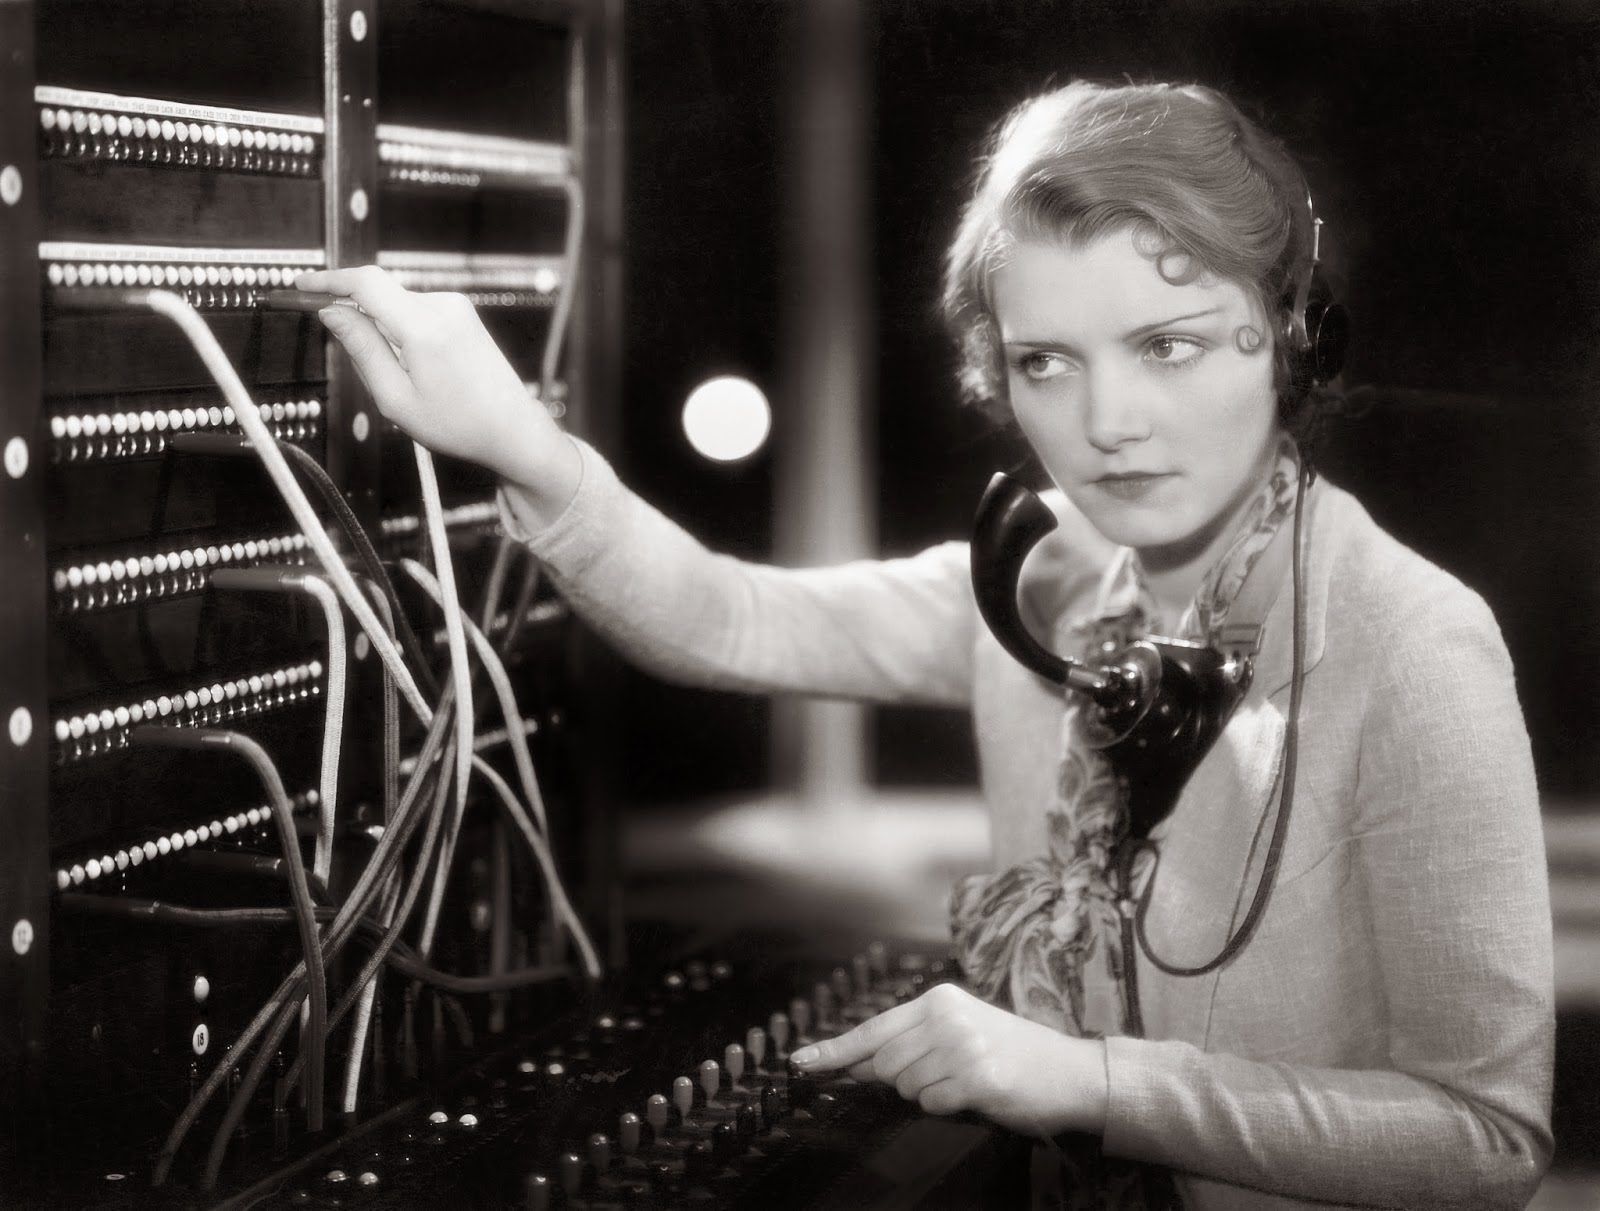 Women Telephone Operators at Work (12)